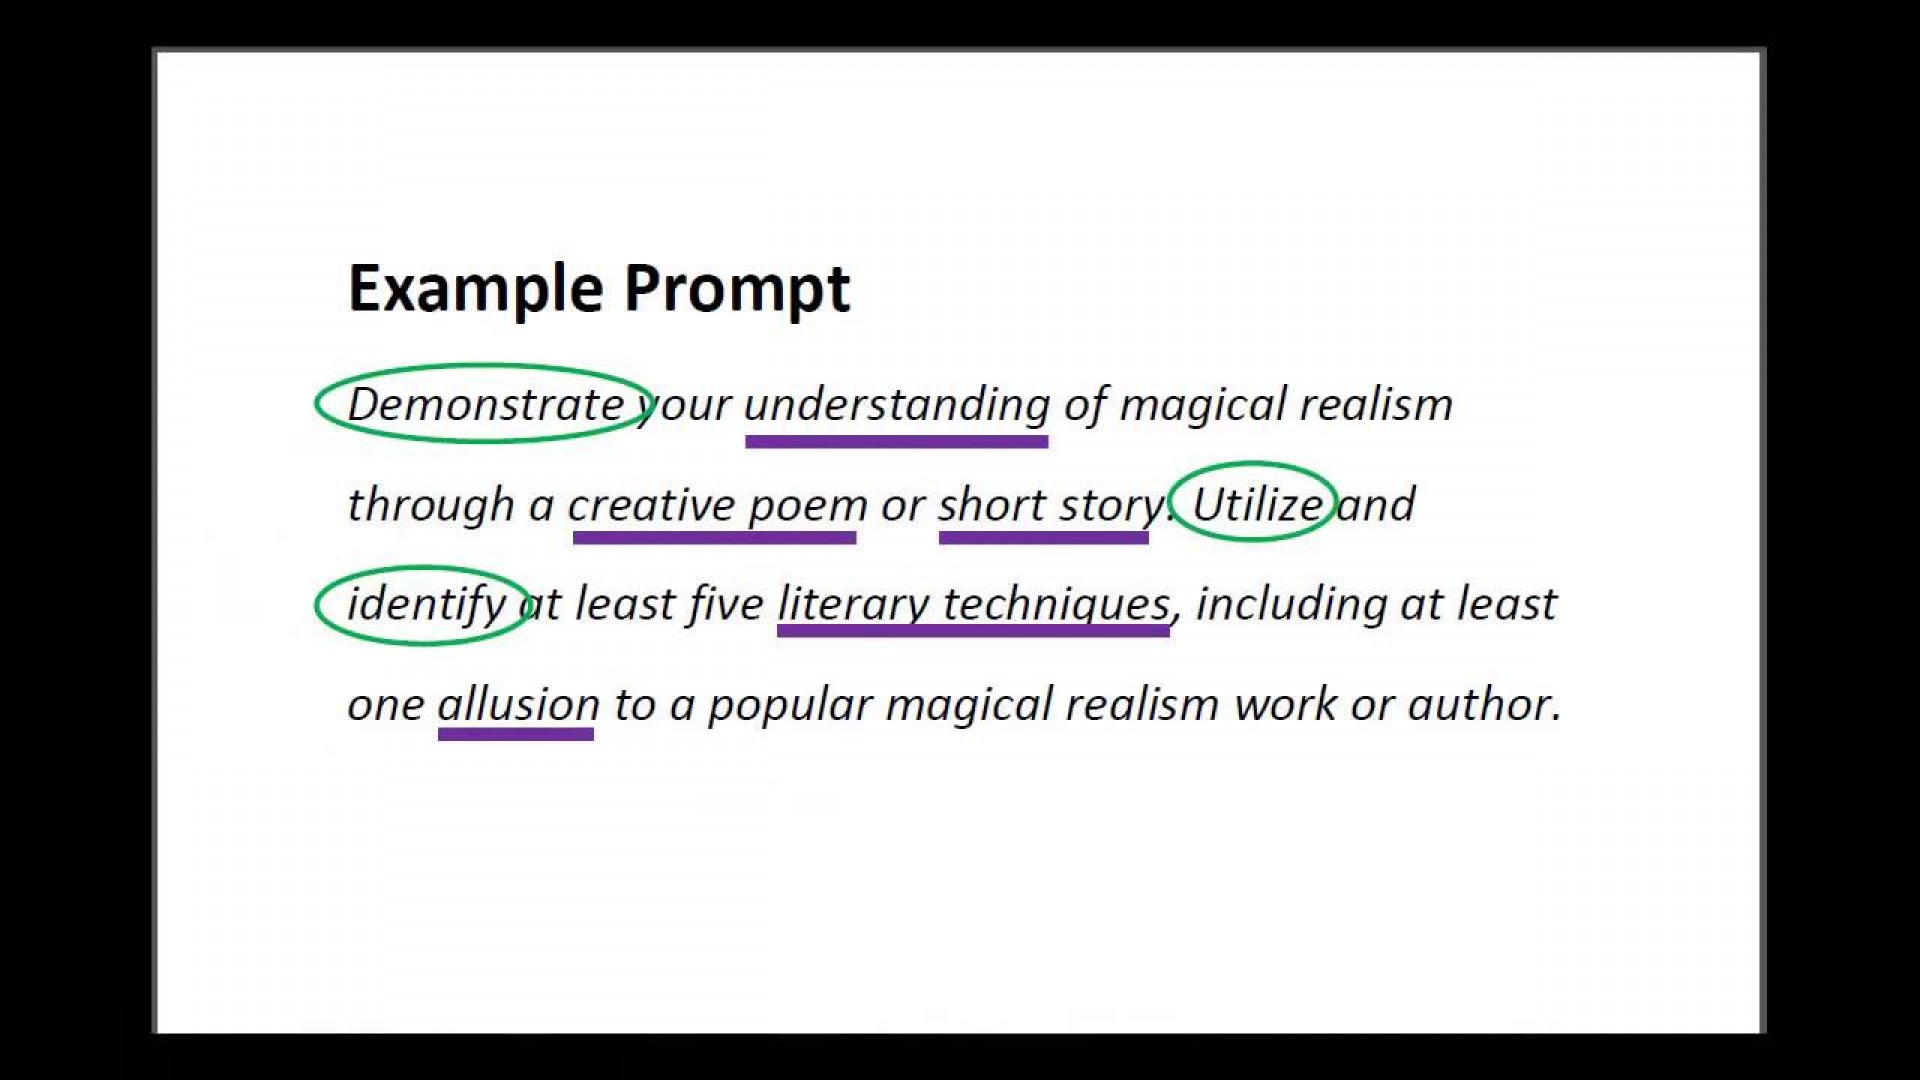 004 Essay Example Prompt Definition Fascinating 1920